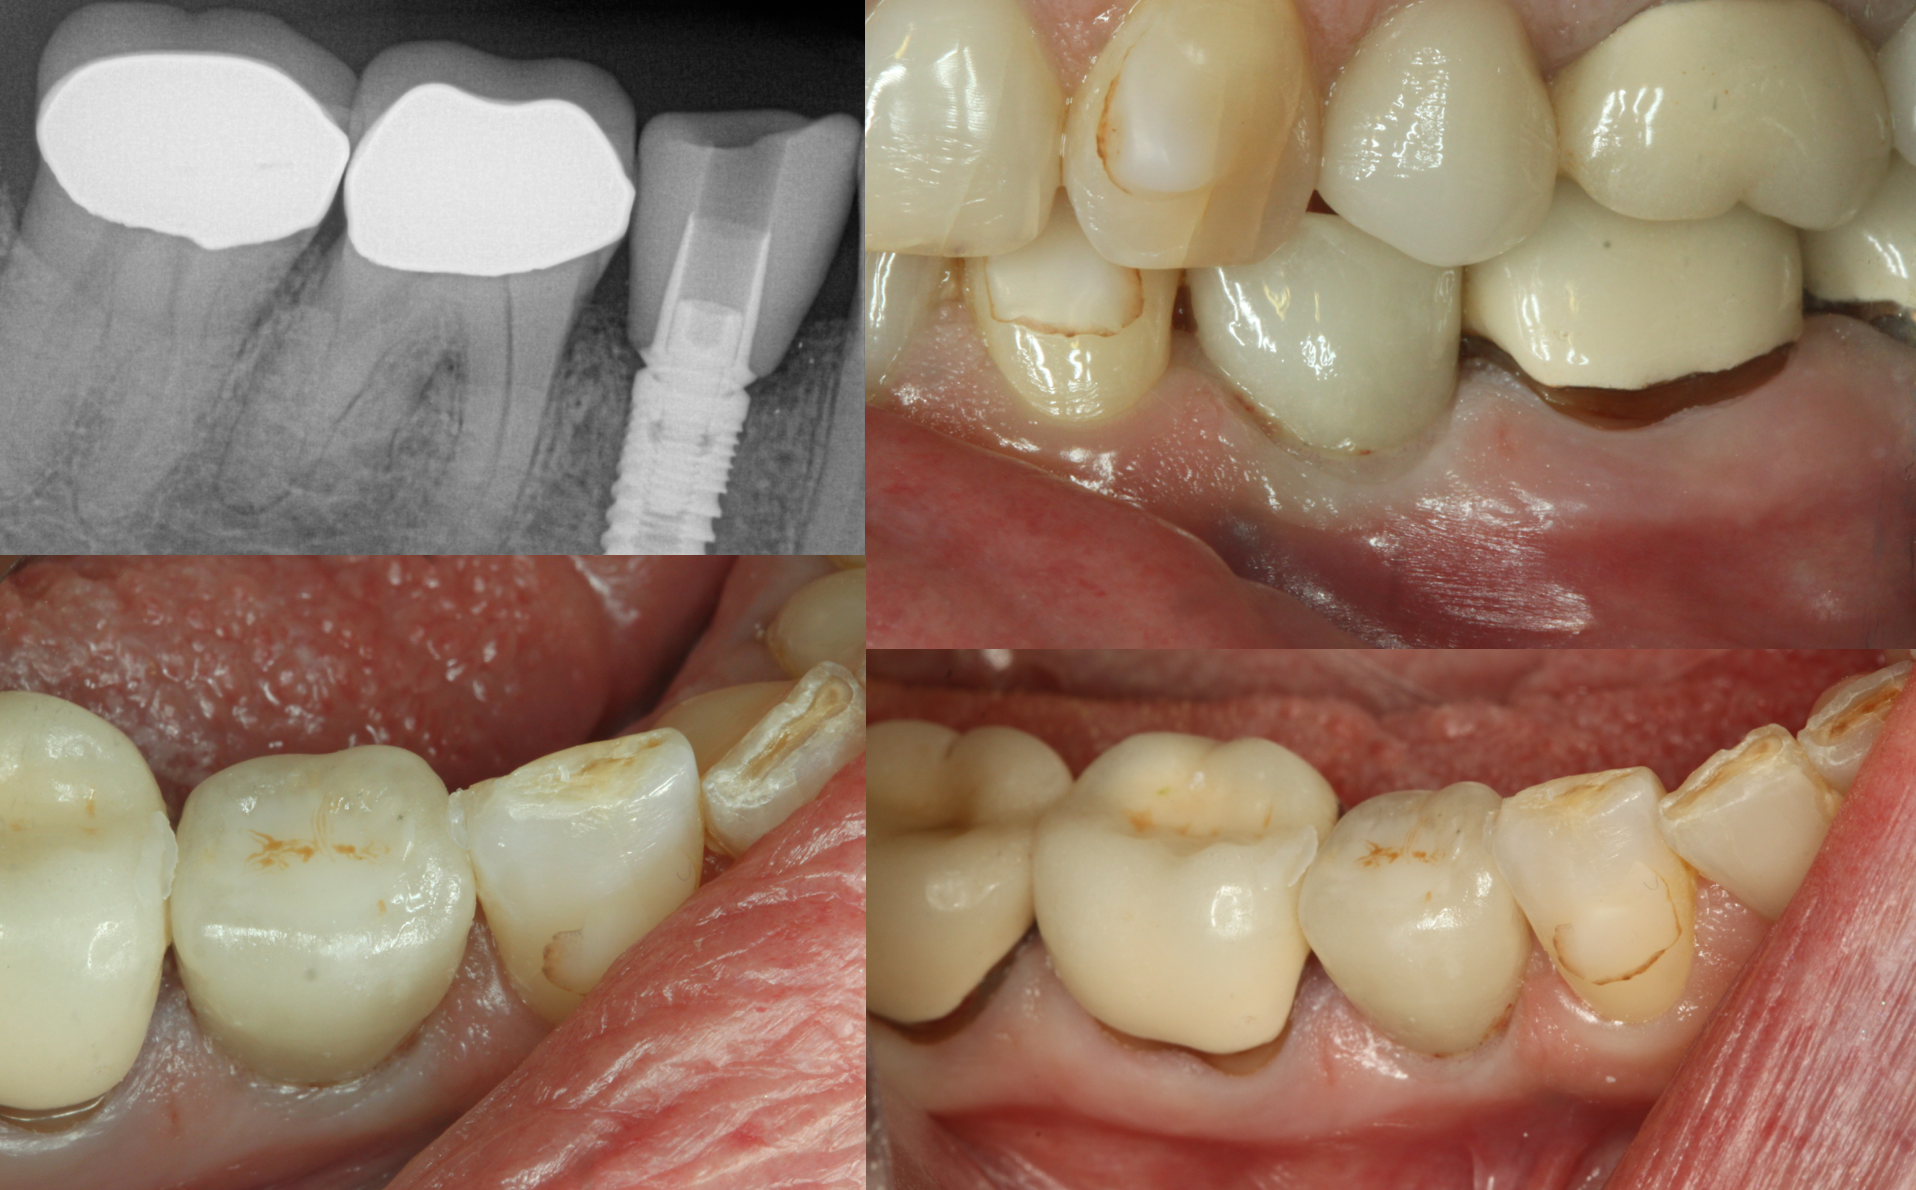 Fig. 7: The final restoration was torqued down to 30 Ncm and an endodontic sponge was placed over the screw hex.  Opaque flowable and paste composites were placed after the bonding agent to seal the access and ochre composite stain was used to characterize.